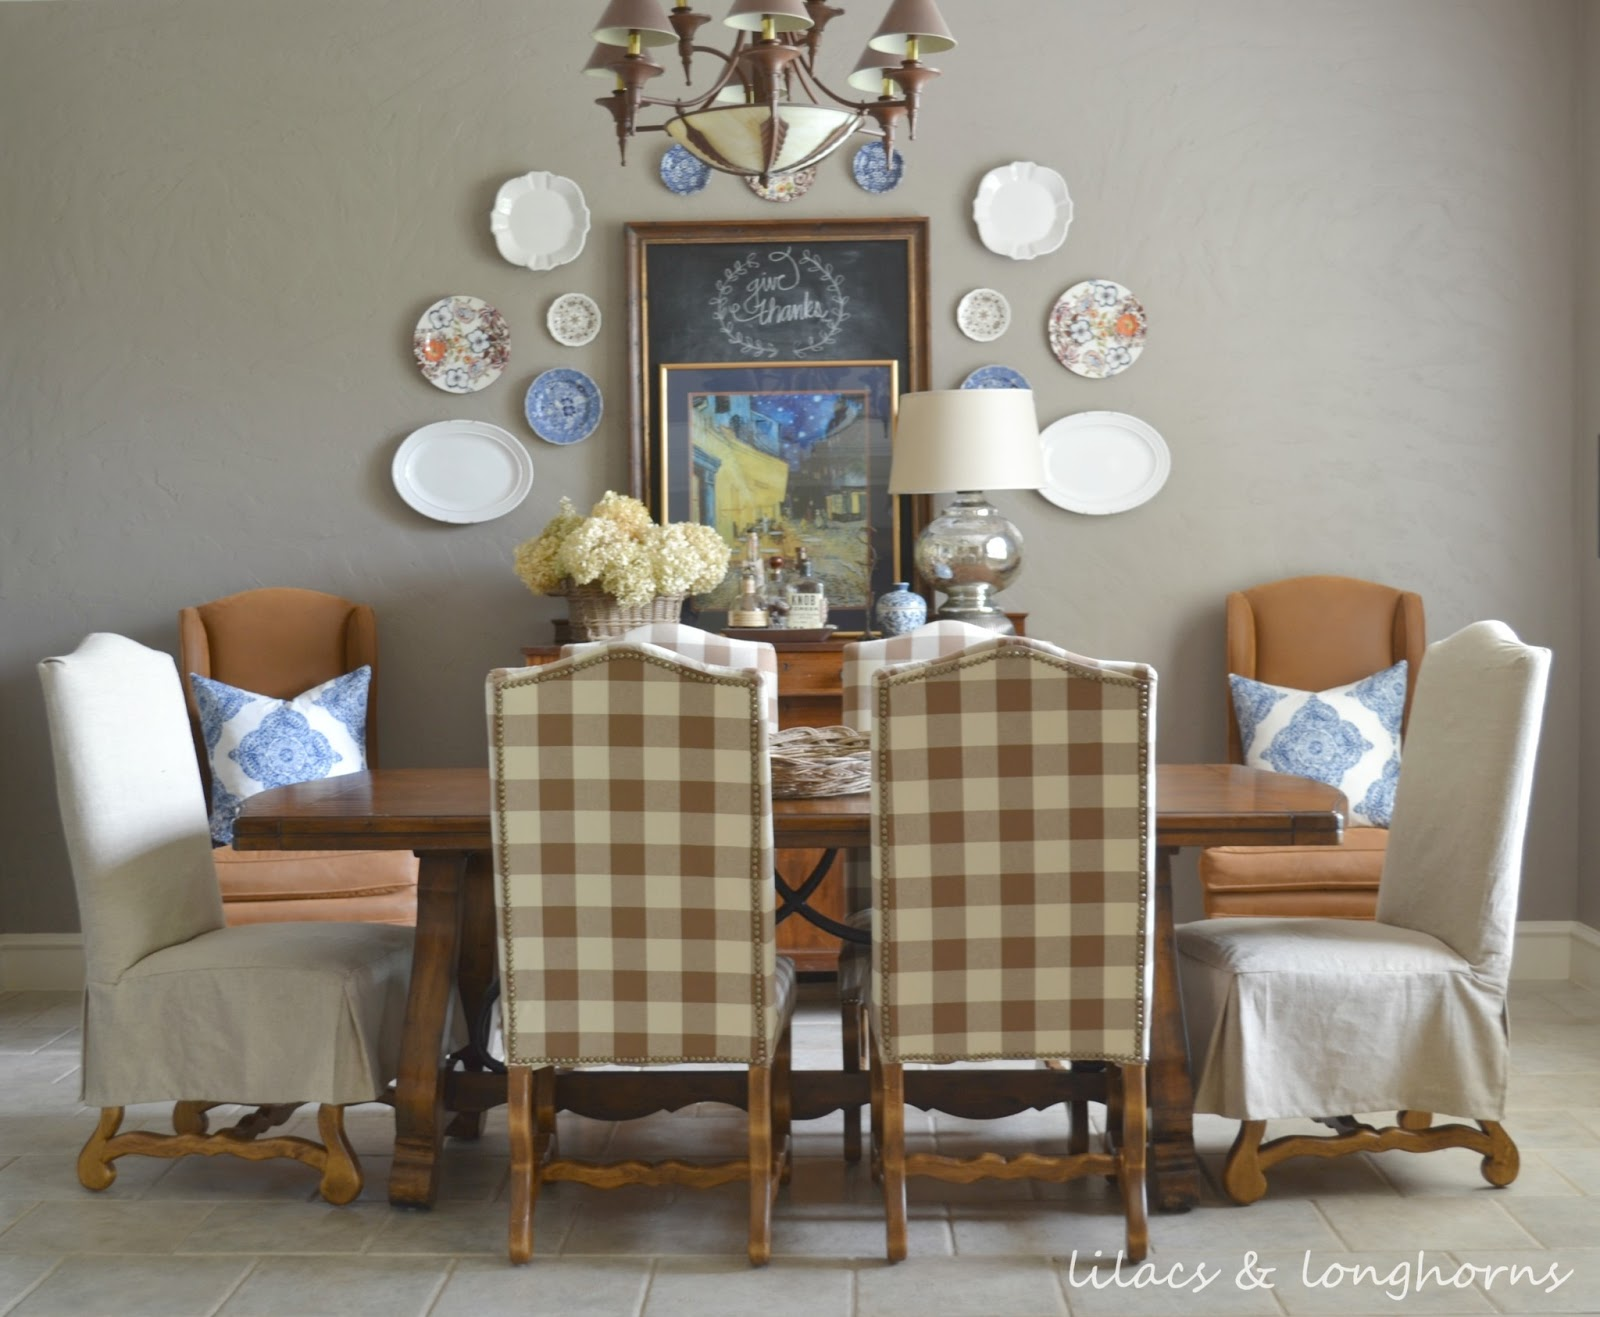 Fabric To Cover Dining Room Chairs | Home design ideas